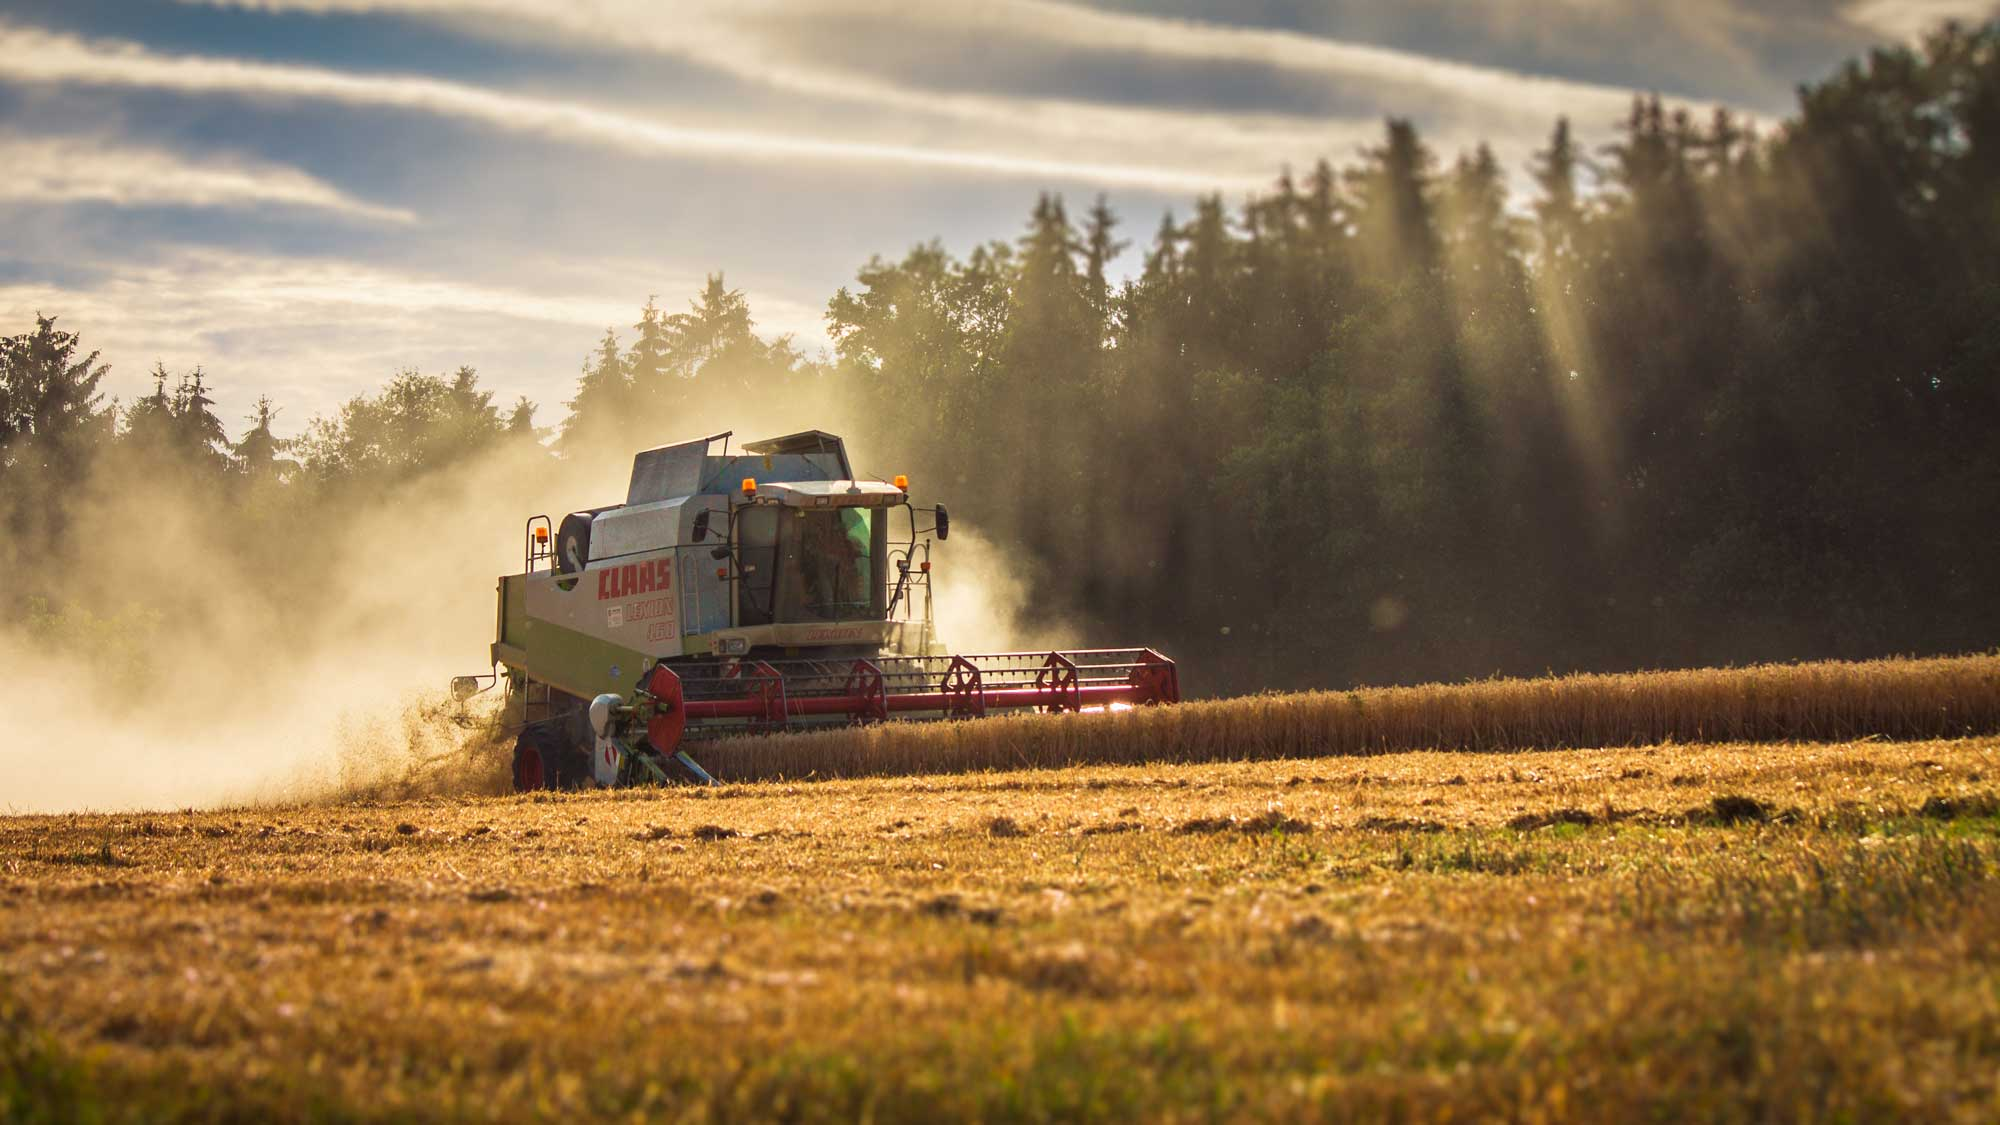 A tractor in a field with sunlight